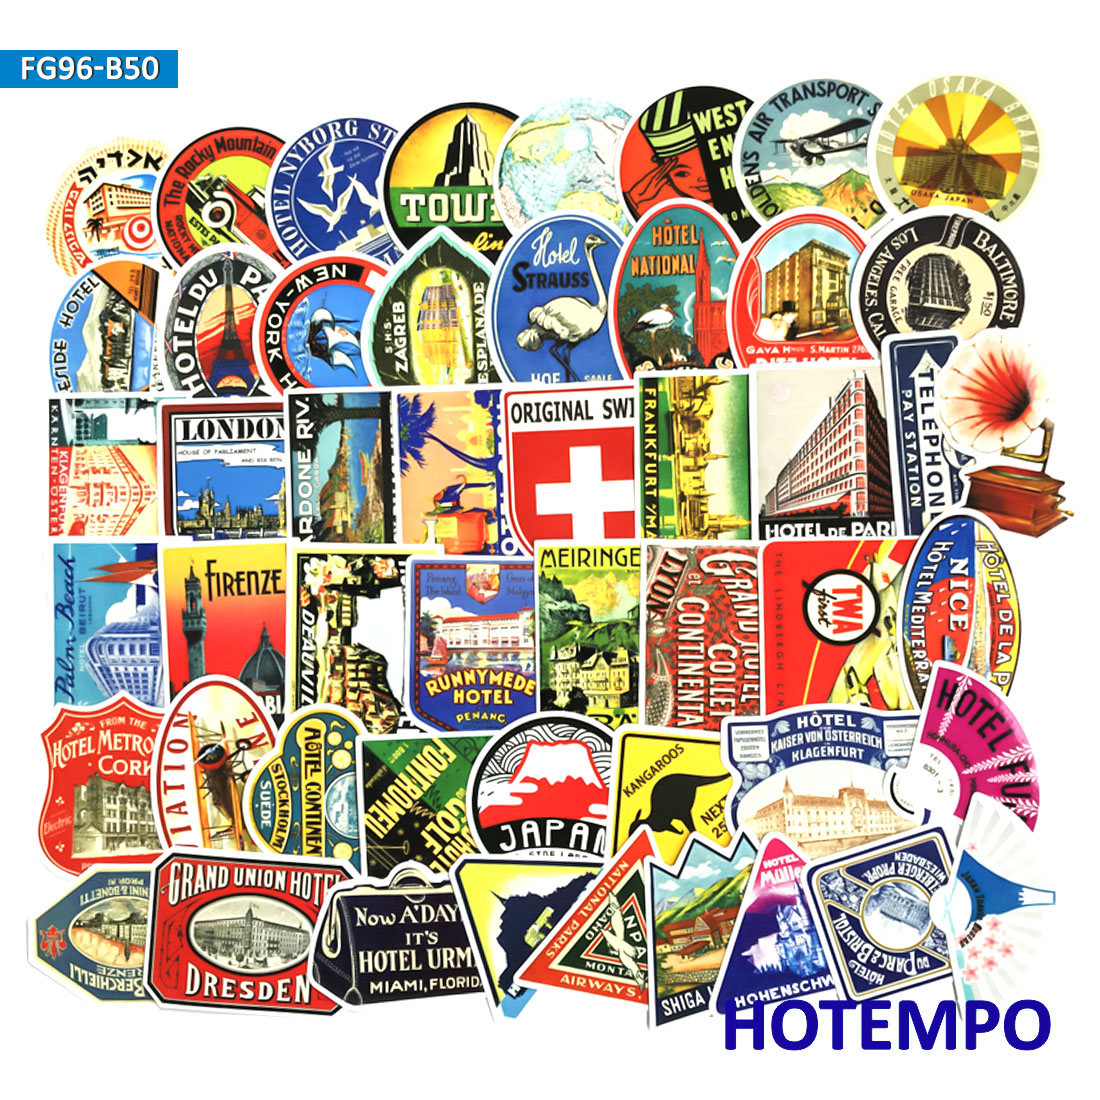 50pcs Vintage Hotel Travel Retro Style Stickers For Mobile Phone Laptop Luggage Guitar Case Skateboard Bike Car Decal Stickers